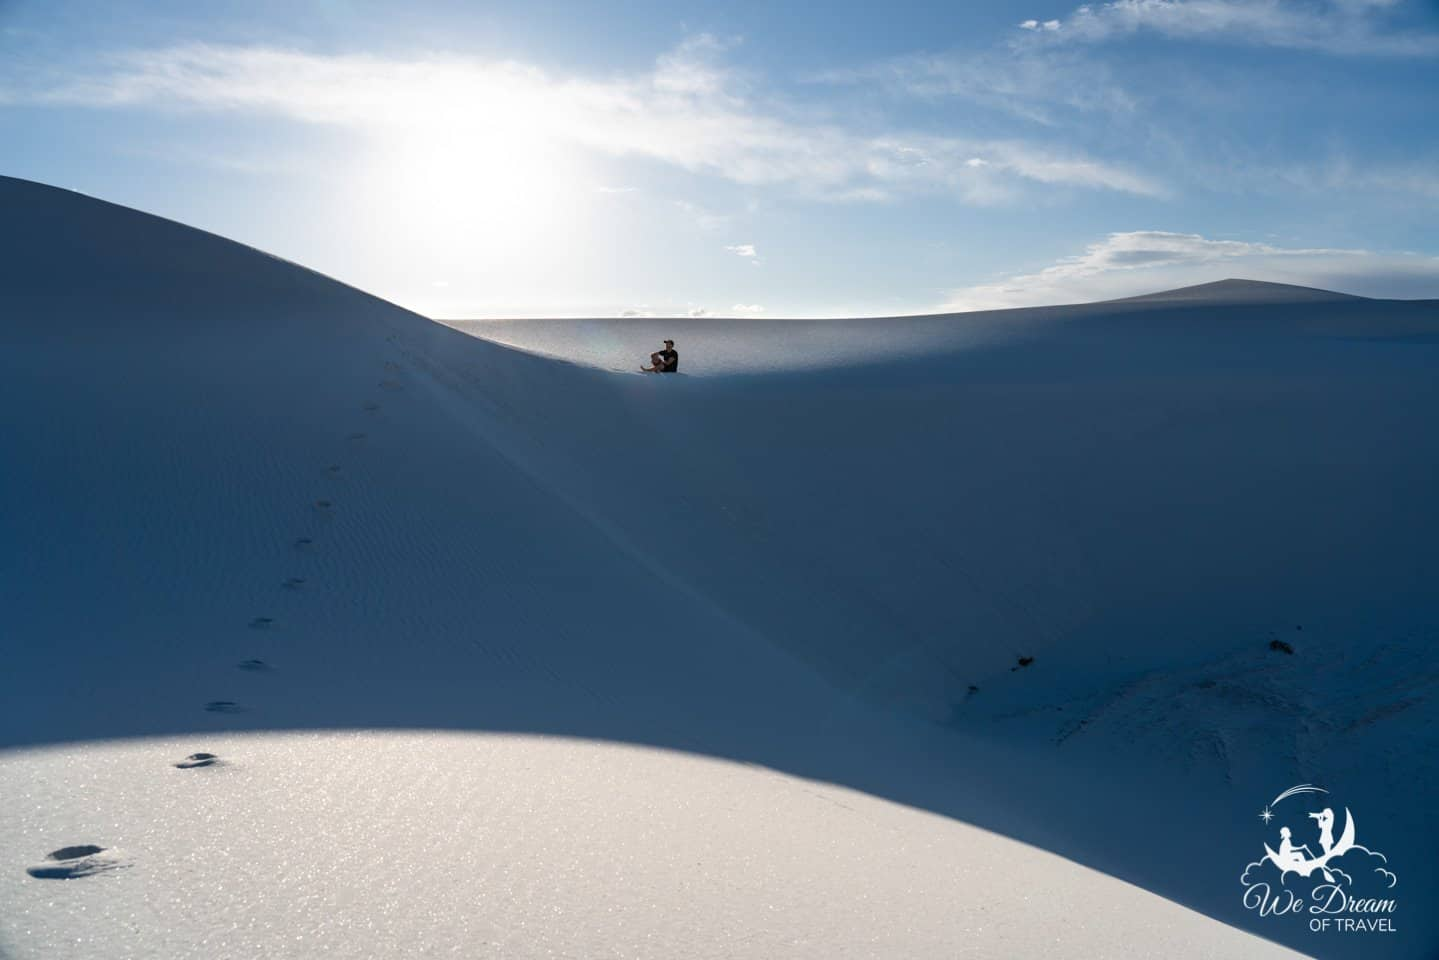 Footprints in the glittering sand leading to a man sitting in the afternoon sun on the gypsum sand dunes at White Sands NM.